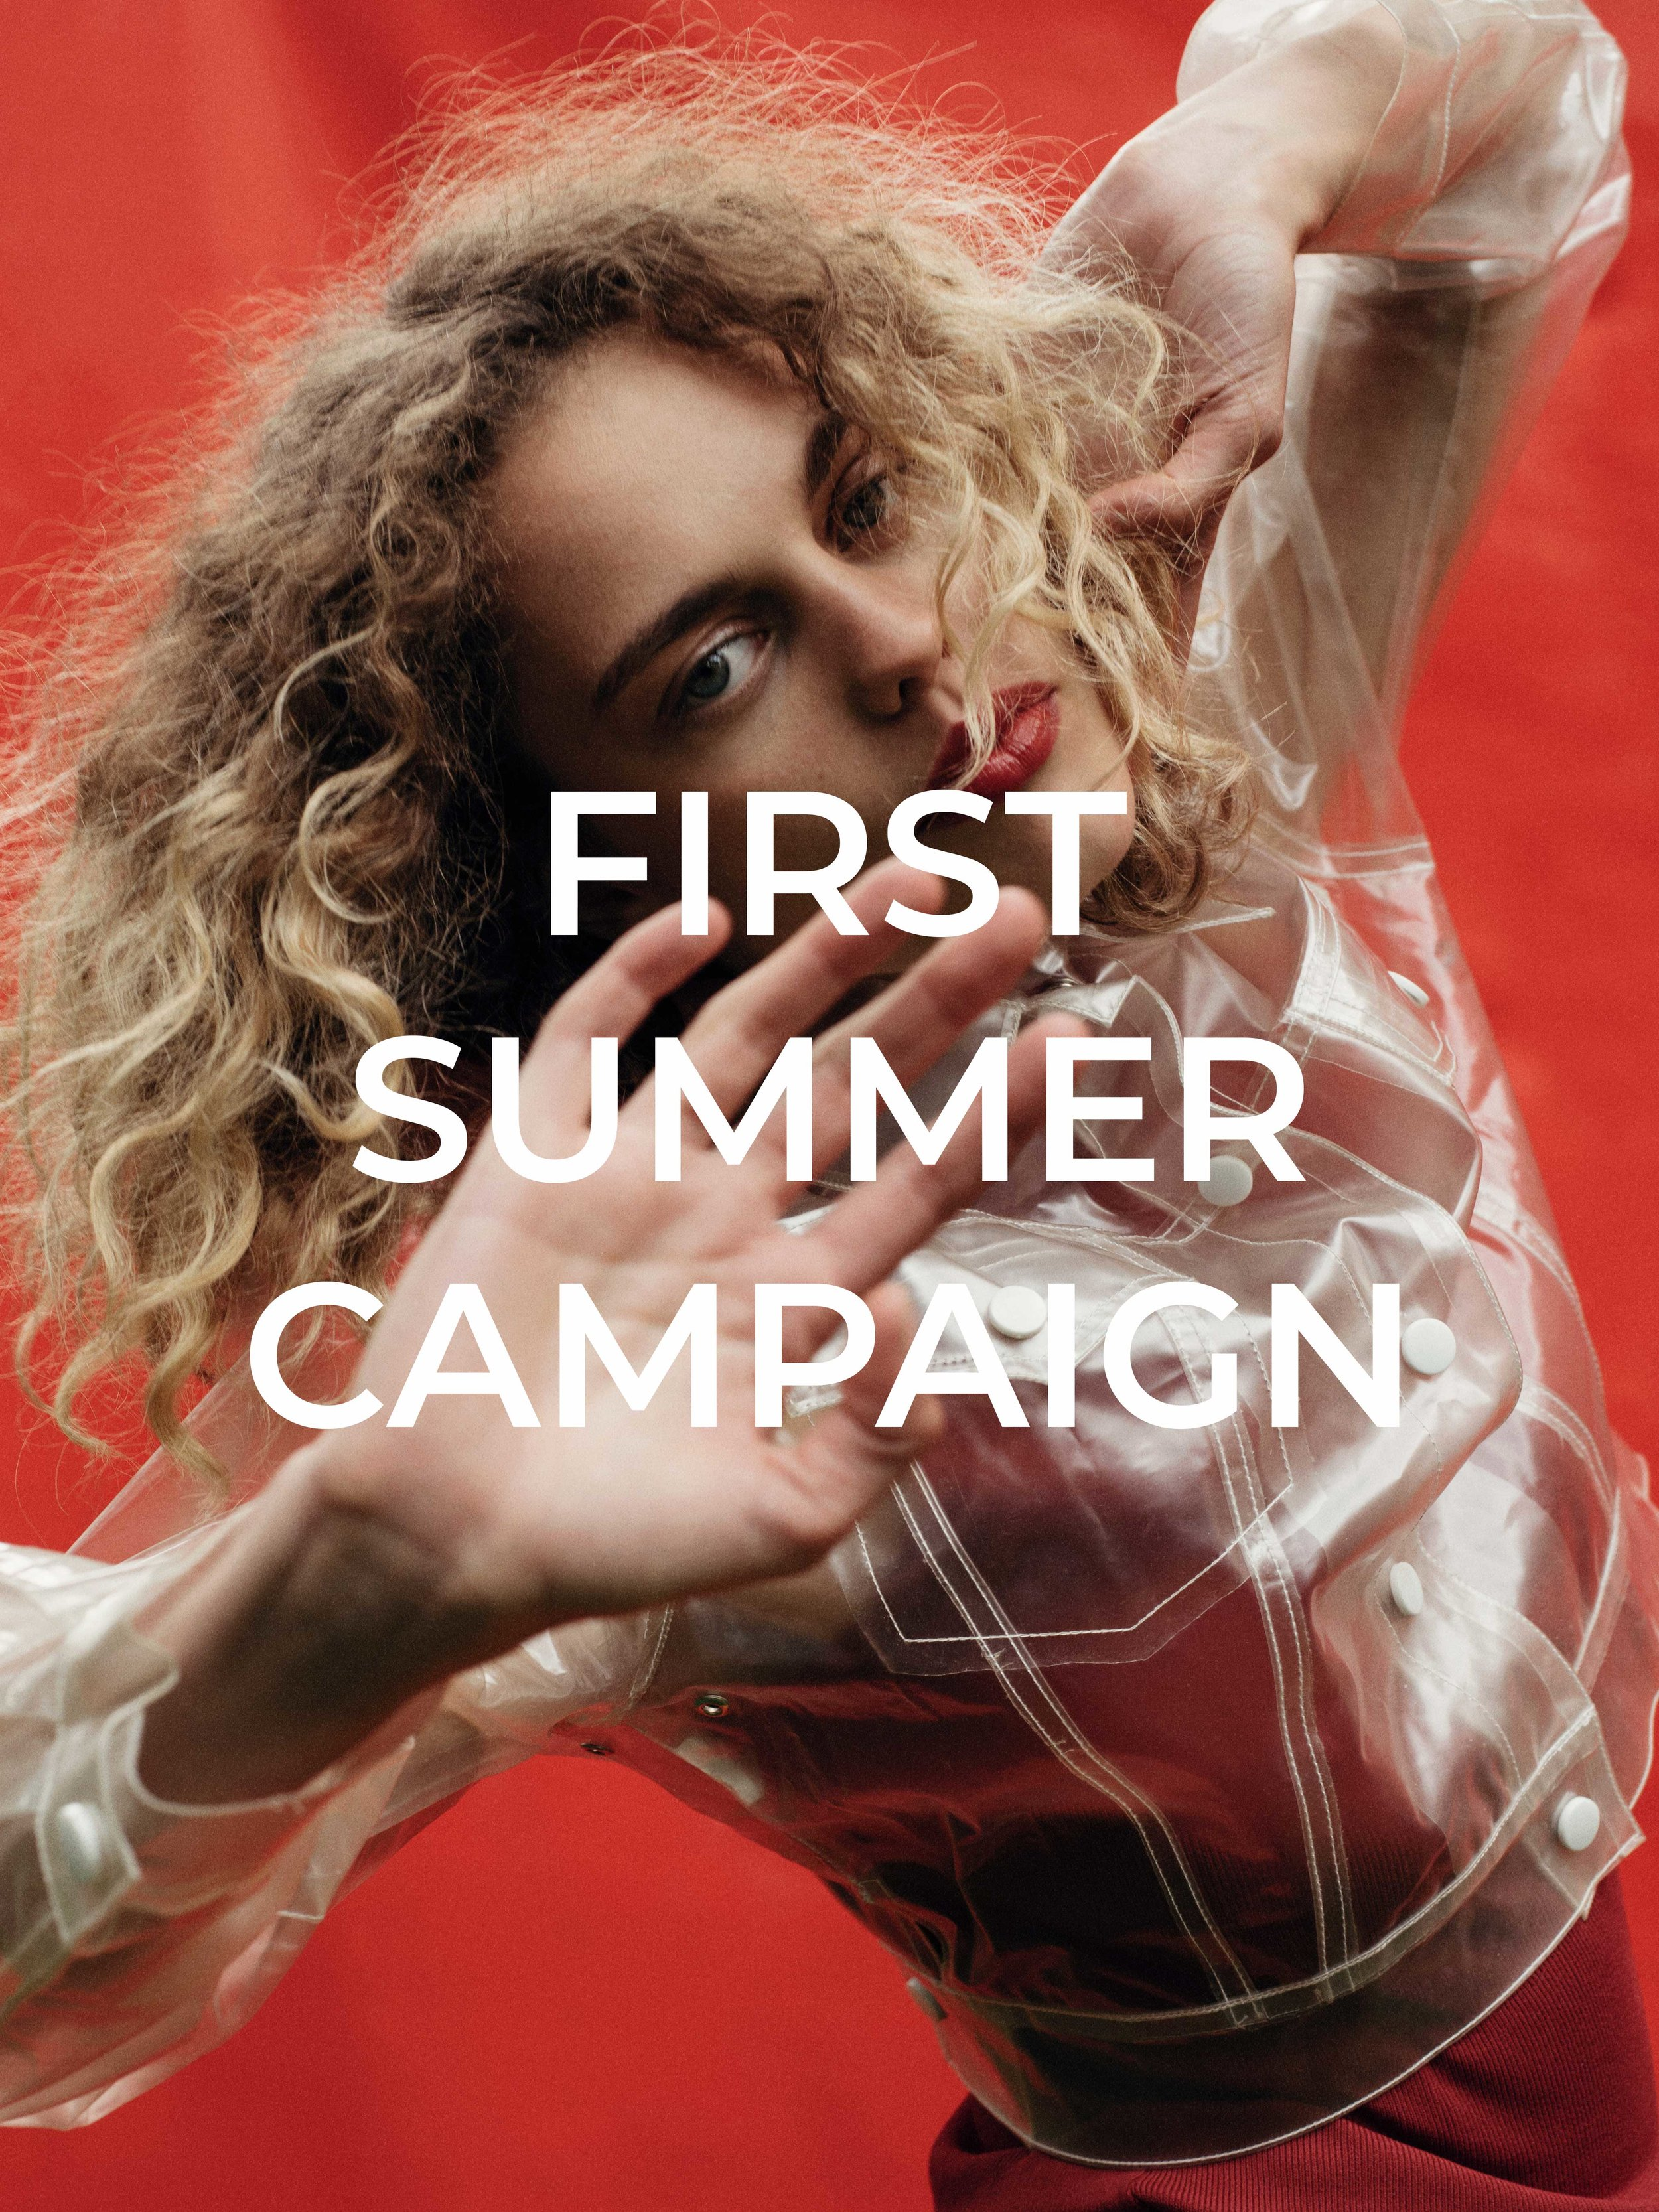 first-summer-campaign-typo-.jpg